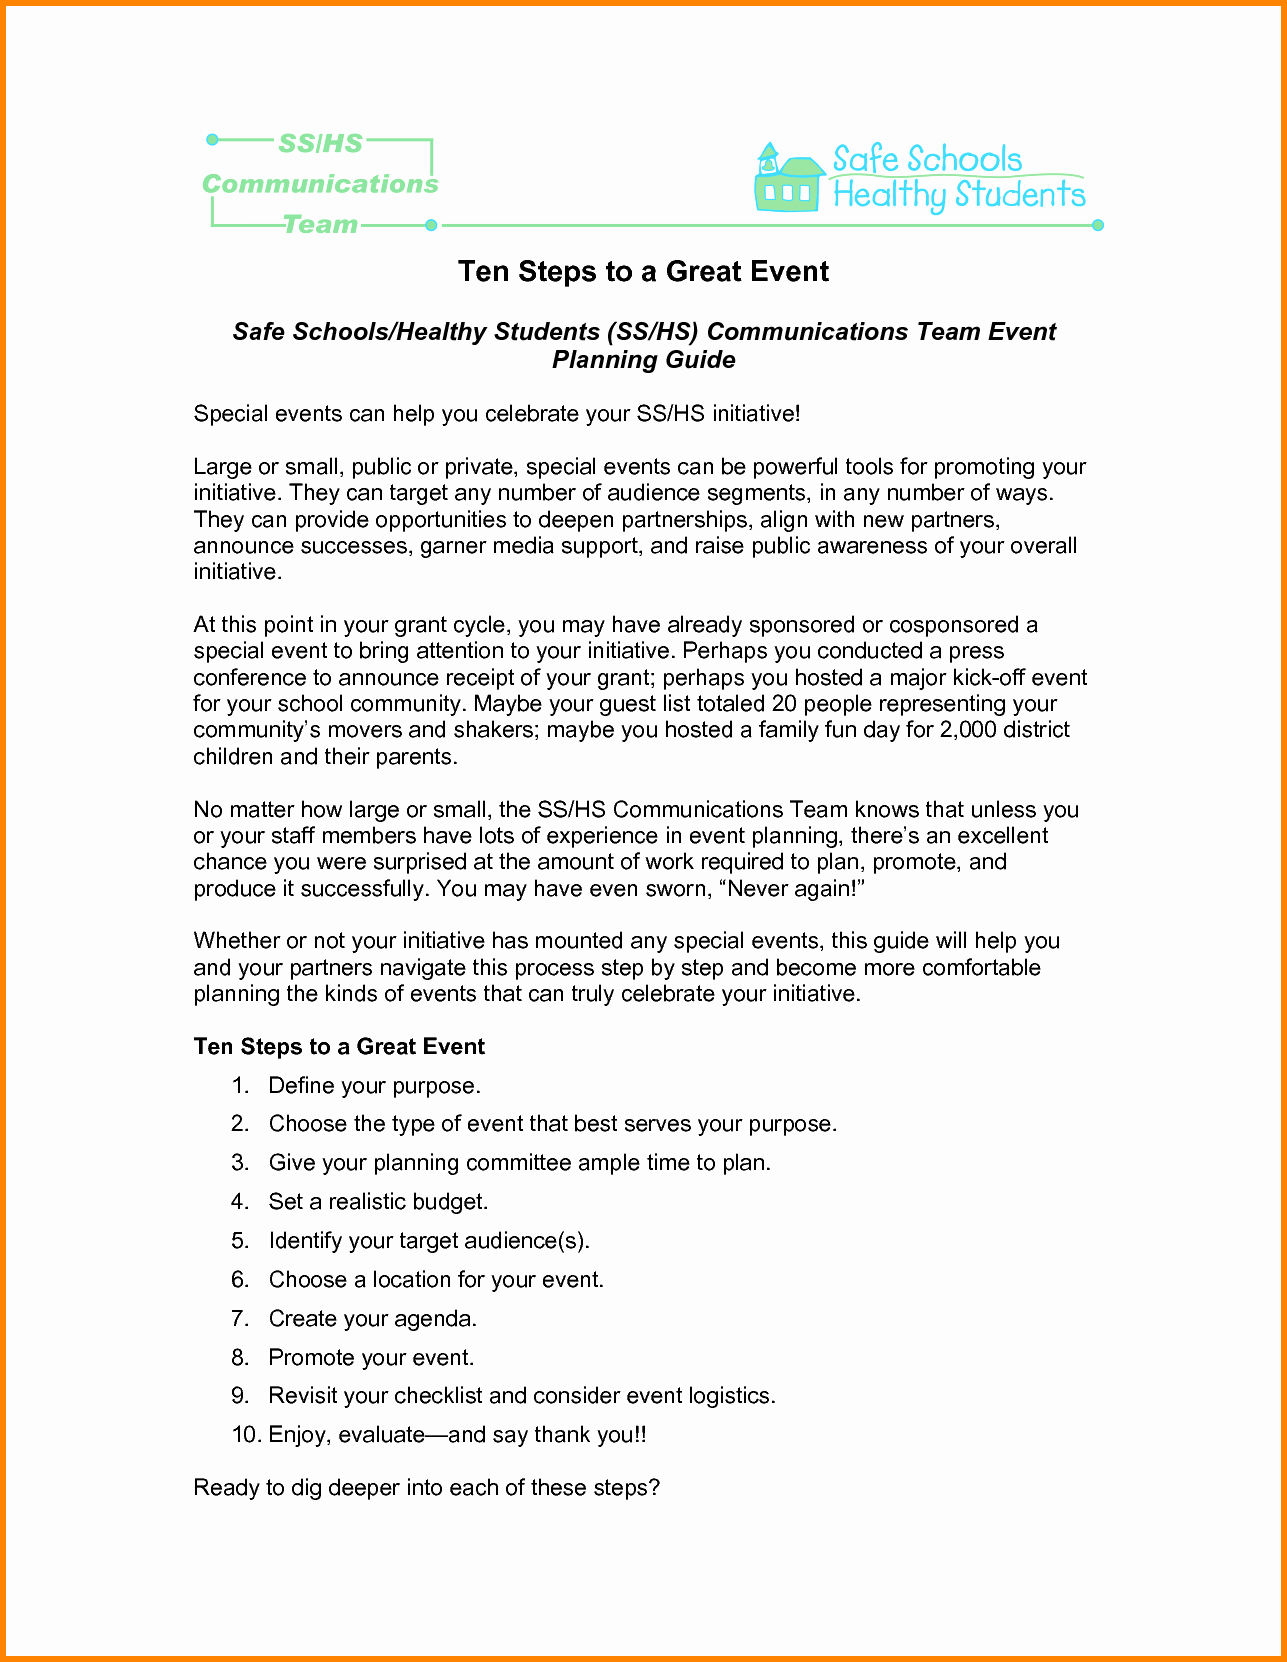 Free Event Management Ness Plan Template Promotion Venue Inside Events Company Business Plan Template